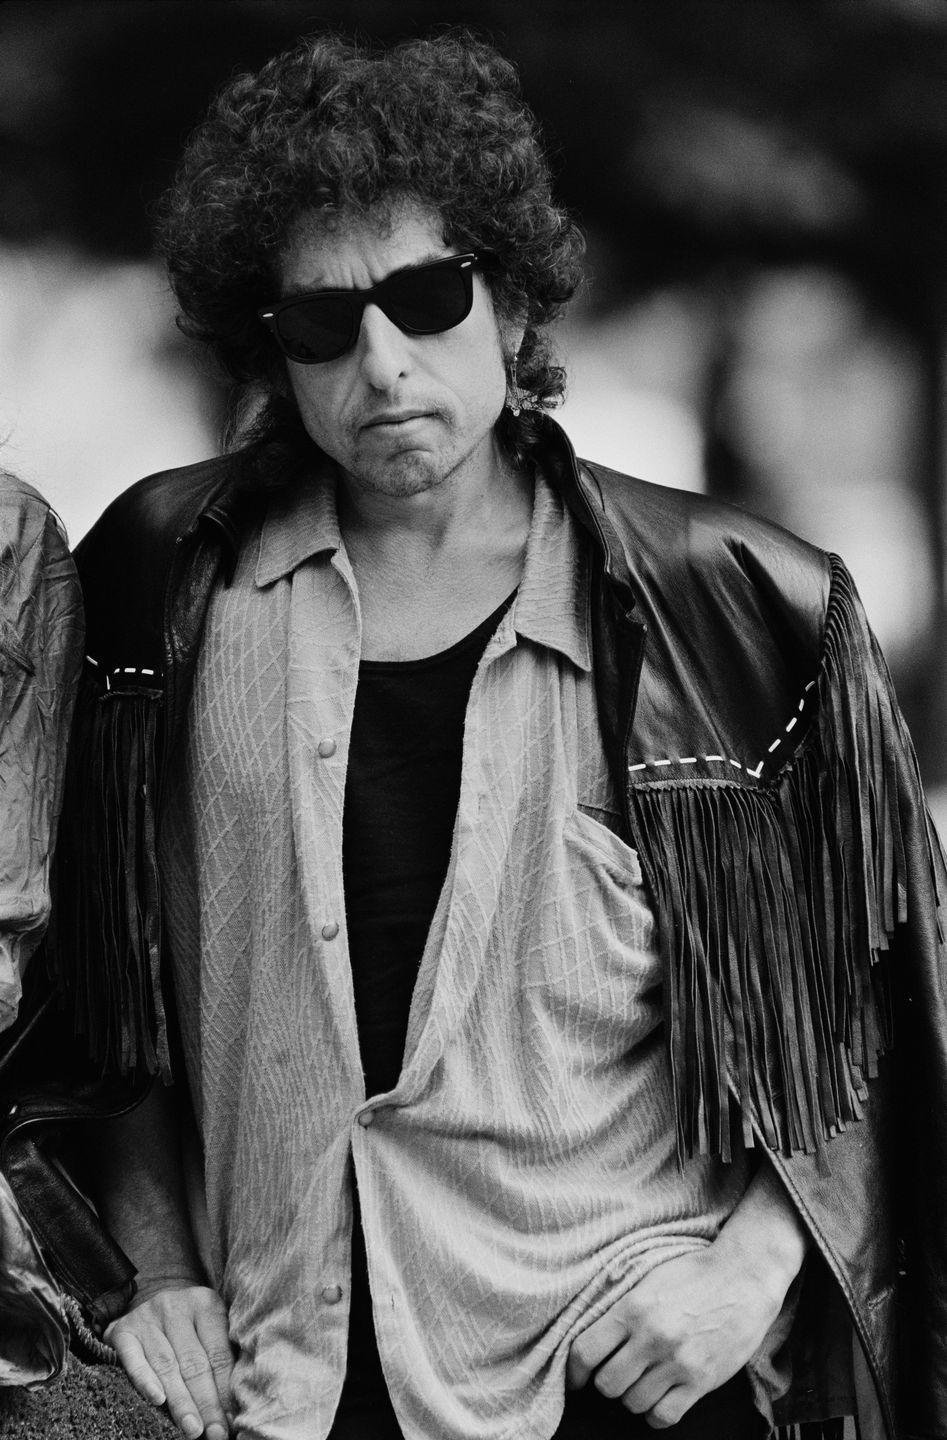 <p>Bob Dylan outside the National Film Theatre in London, where his film <em>Hearts of Fire</em> was showing in 1986.</p>